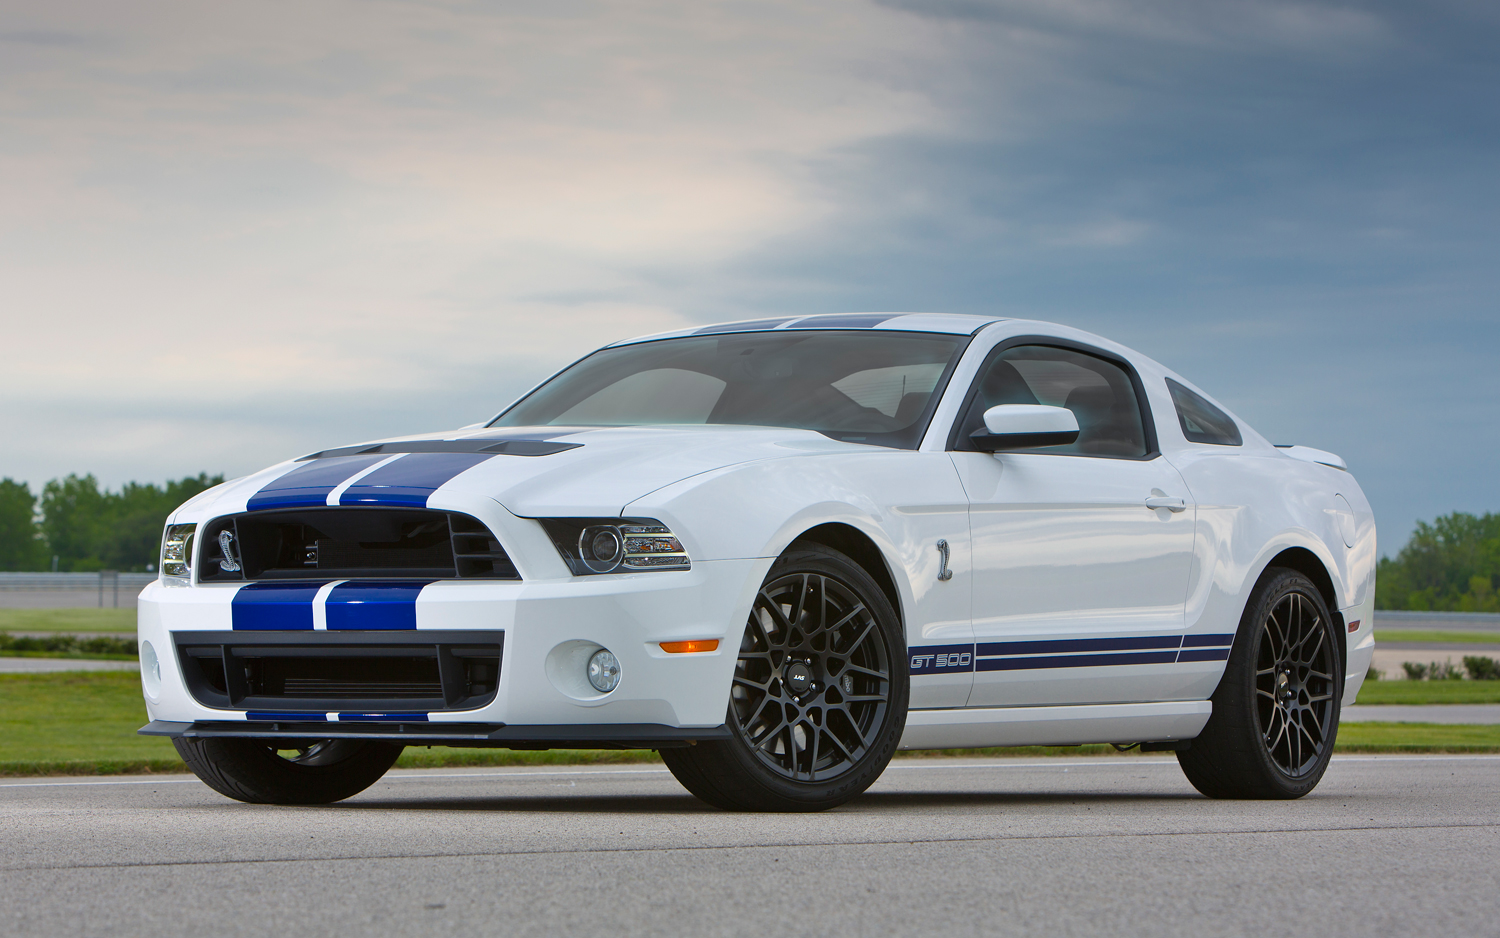 Ford Shelby Gt500 #20